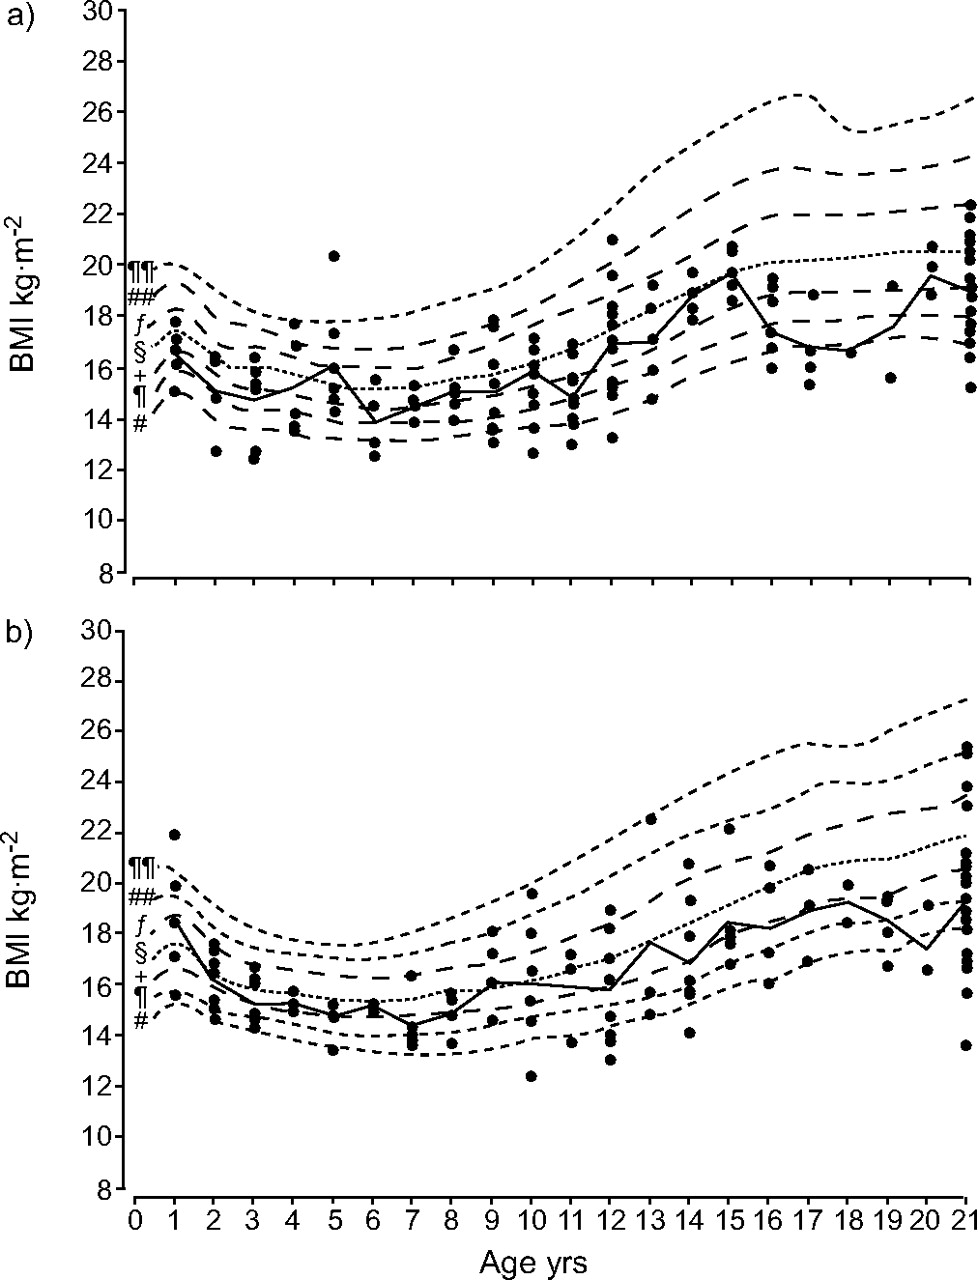 plasma fatty acids and lipid hydroperoxides increase after antibiotic therapy in cystic fibrosis